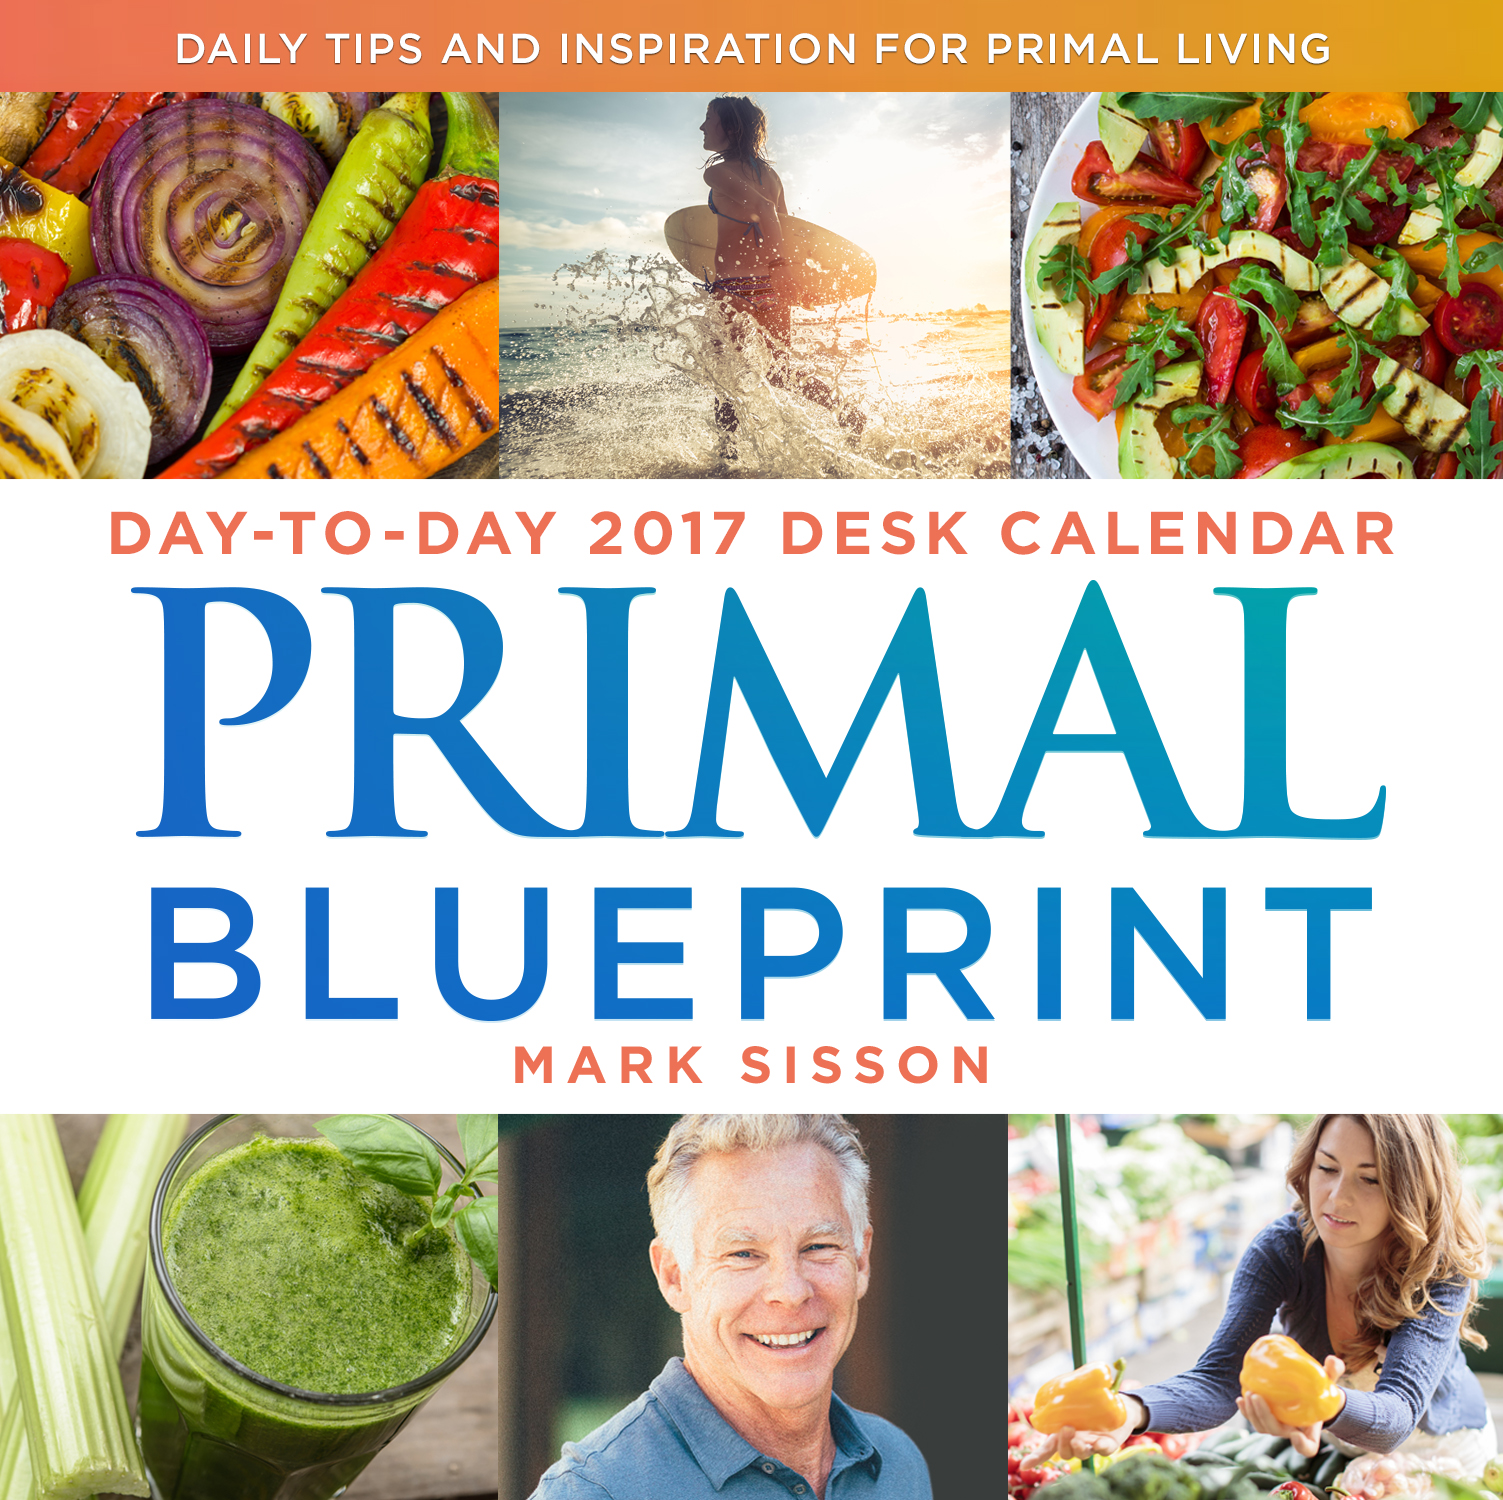 Primal Blueprint Day-to-Day 2017 Desk Calendar